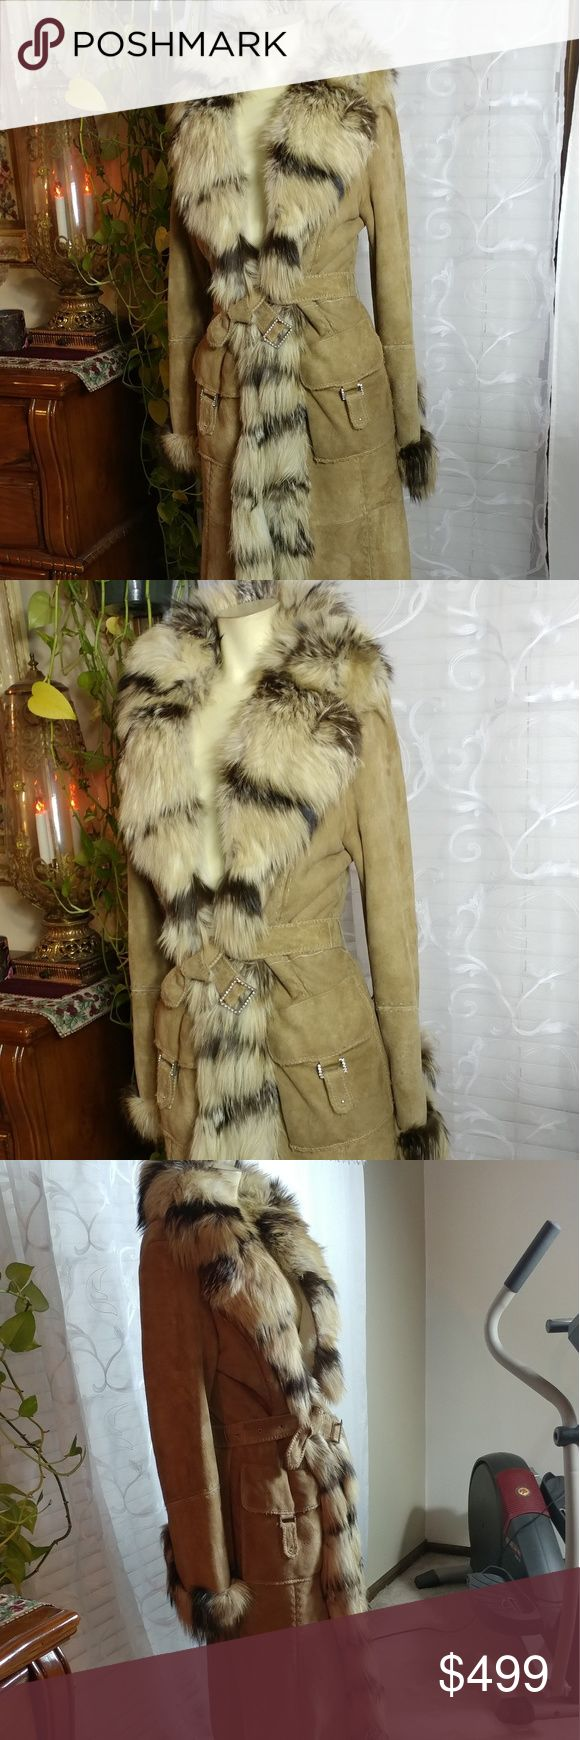 Designers fur coat BASETTI COLLECTION Made in Italy. In very good condition. Italy size 44 Desigual Jackets & Coats Trench Coats